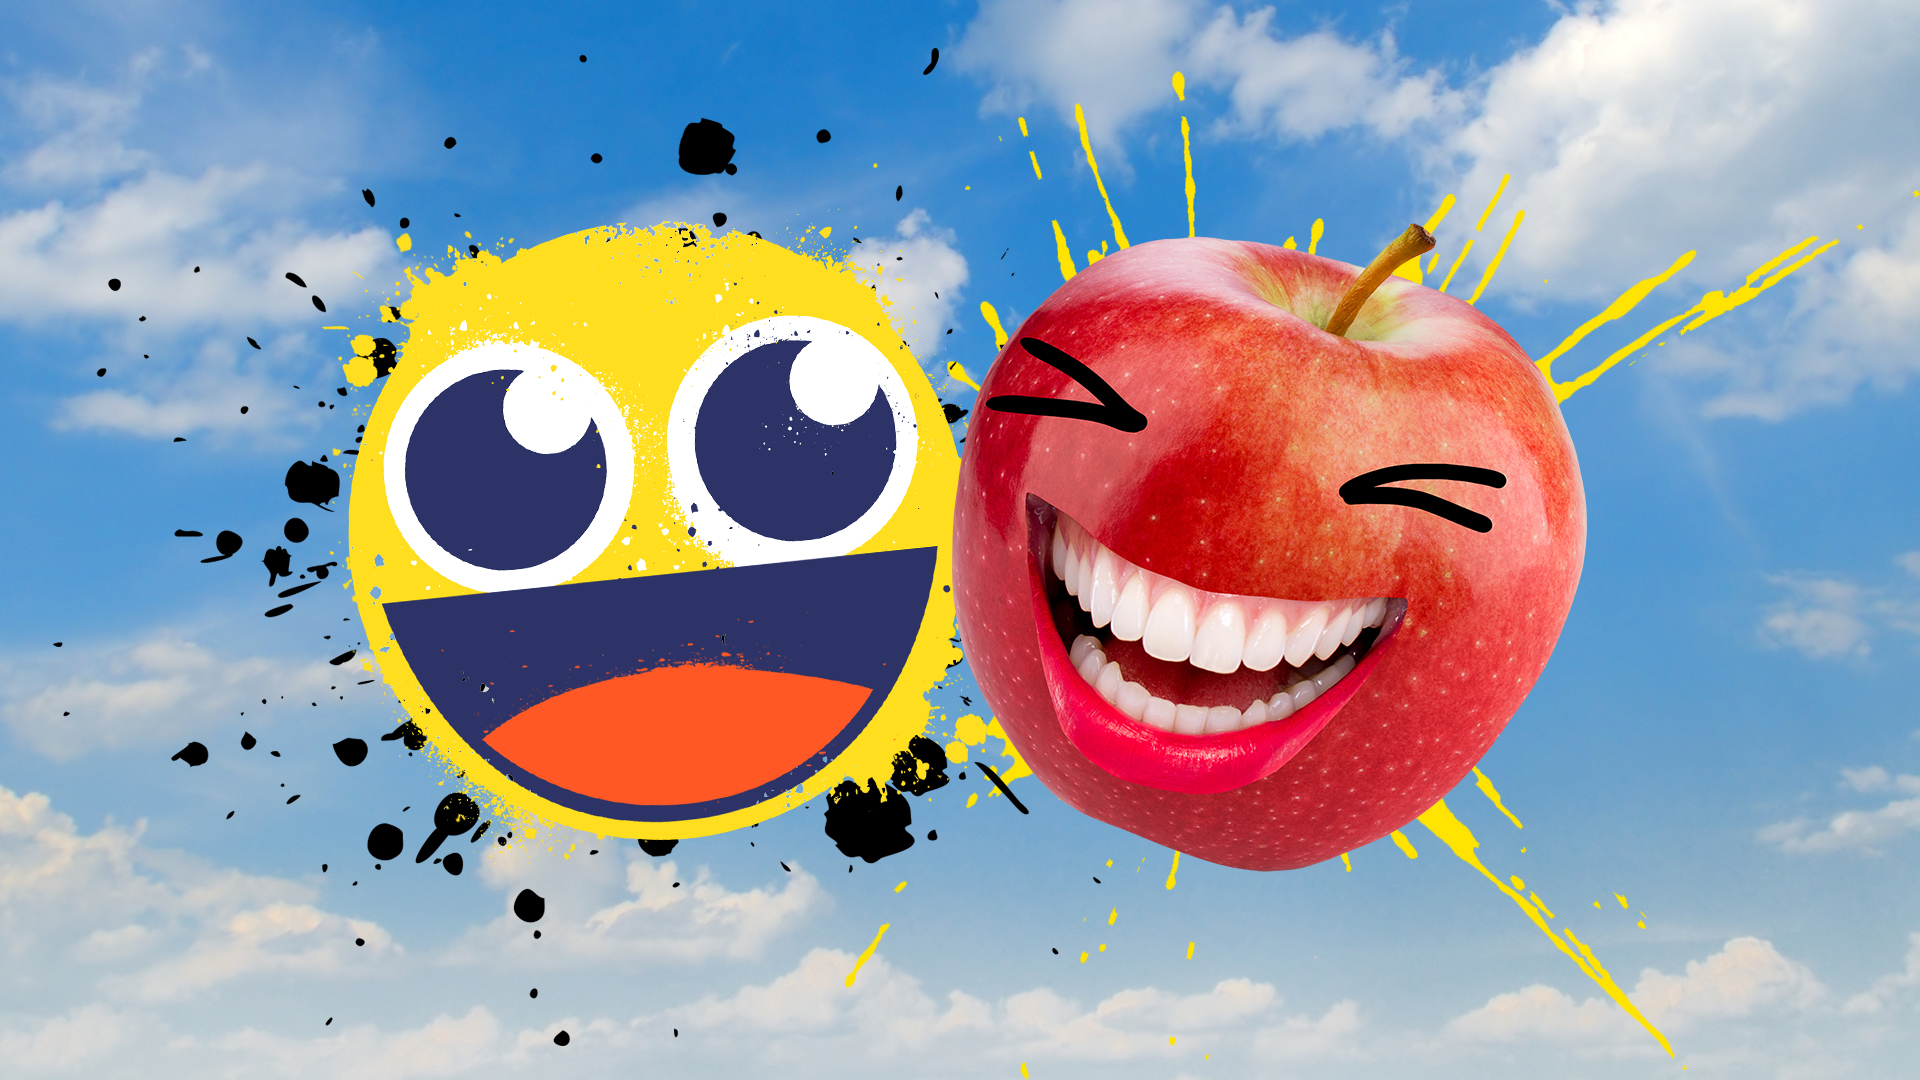 A laughing emoji and giggling red apple